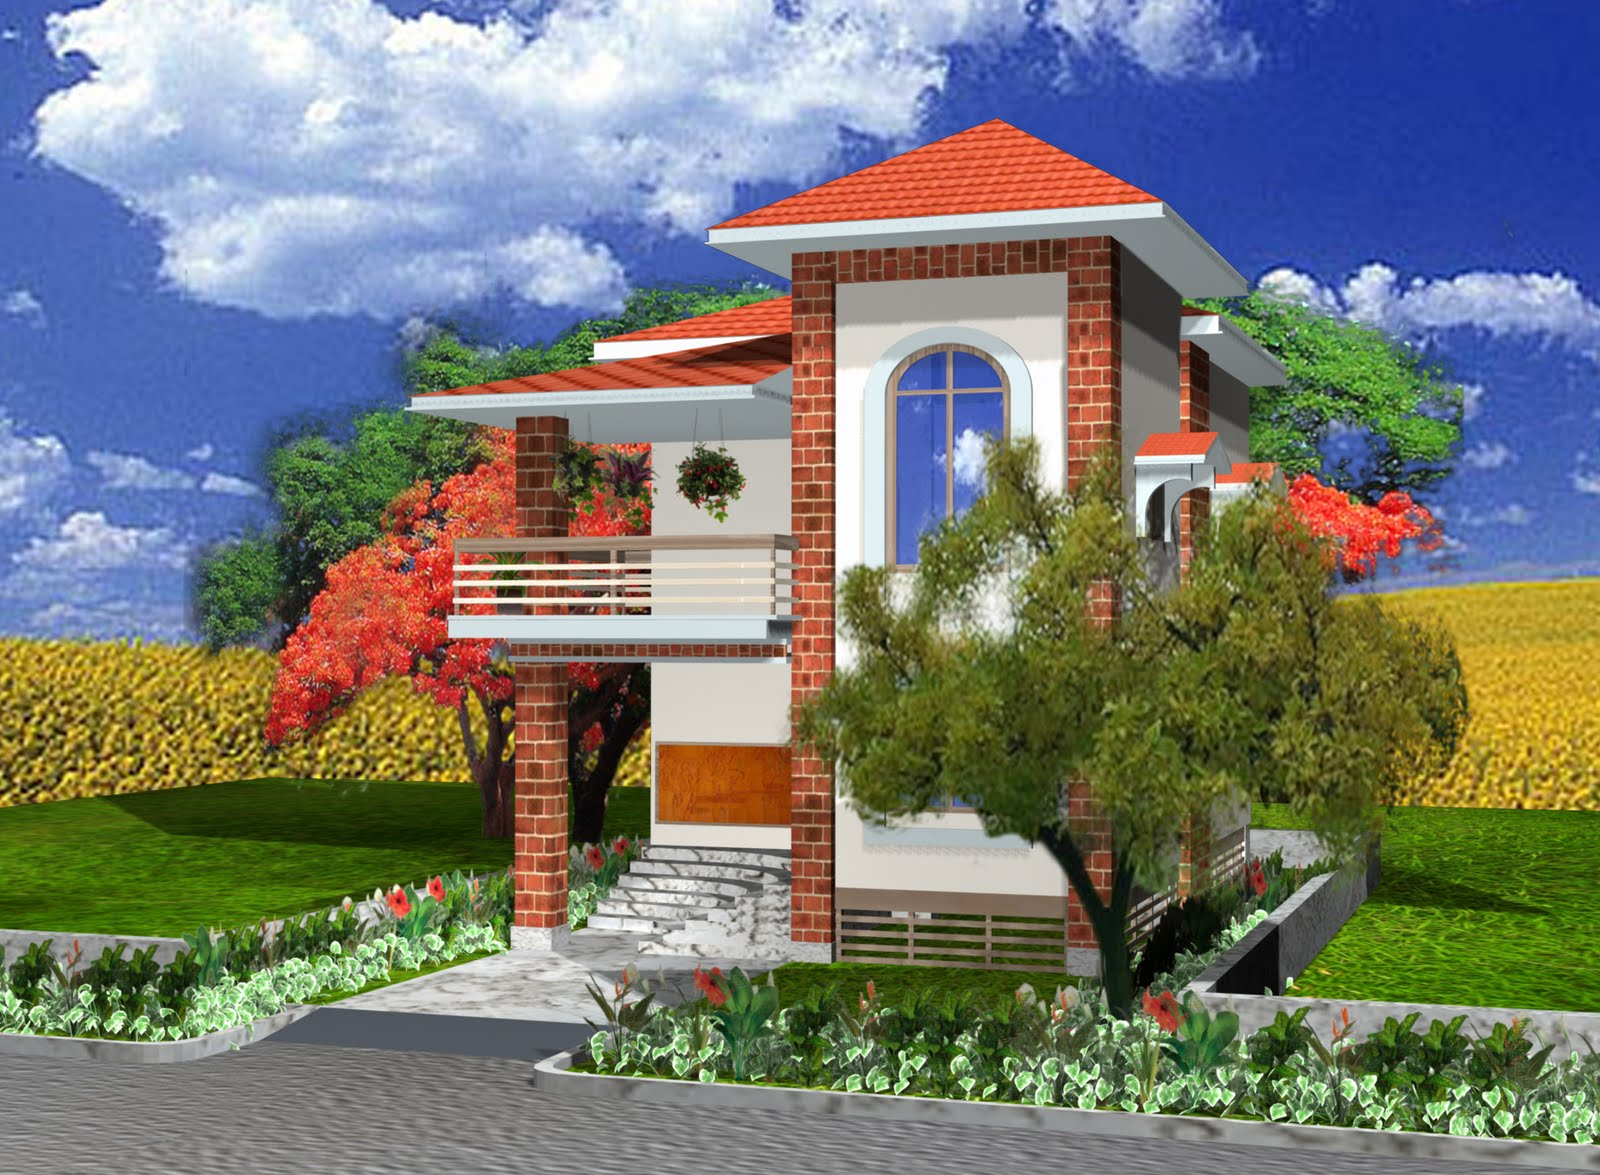 Shadhin 39 s personal blog 3d view of duplex house design 3d view home design